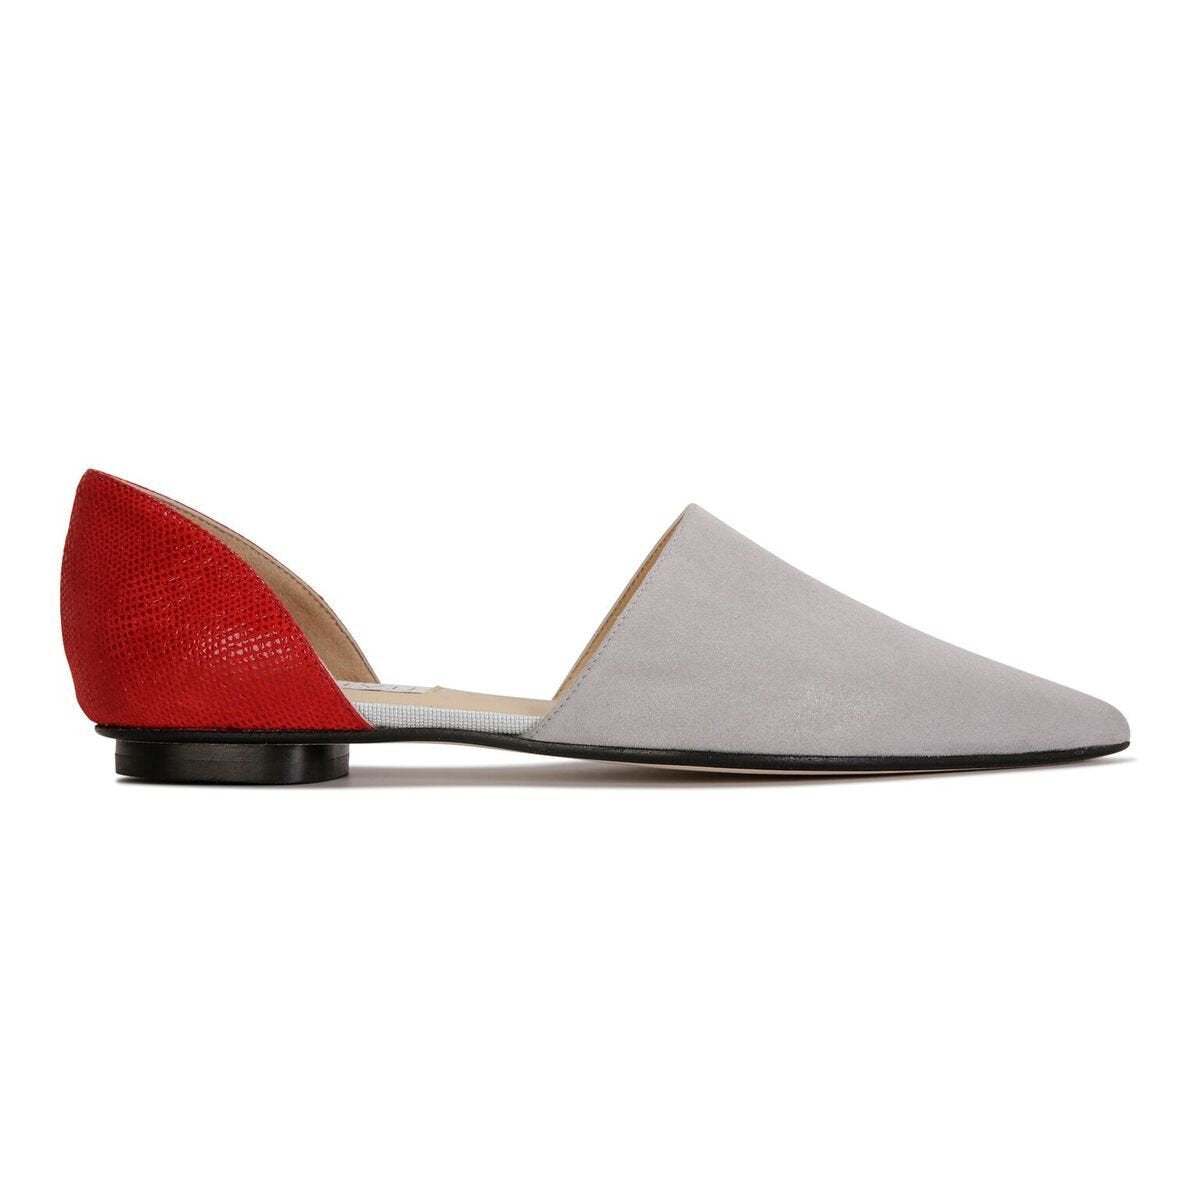 ELBA - Hydra Grigio + Karung Rosso, VIAJIYU - Women's Hand Made Sustainable Luxury Shoes. Made in Italy. Made to Order.